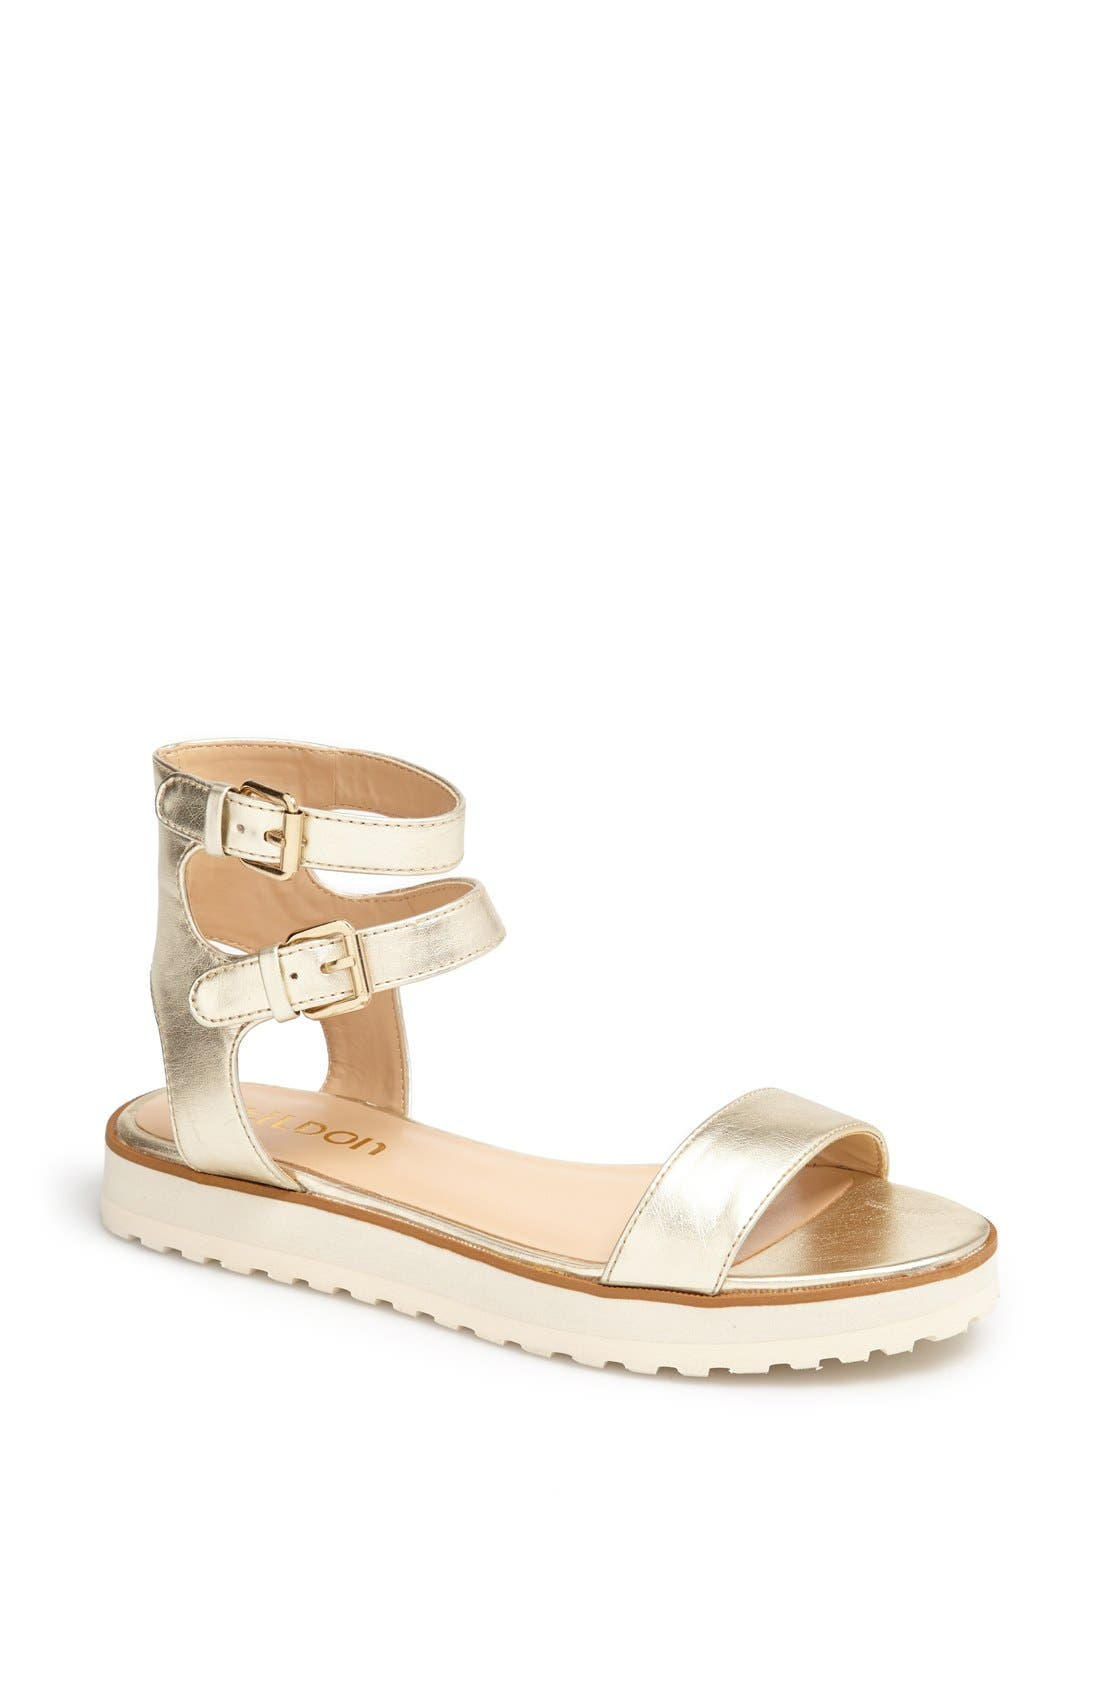 Alternate Image 1 Selected - Tildon 'Manda' Platform Ankle Strap Sandal